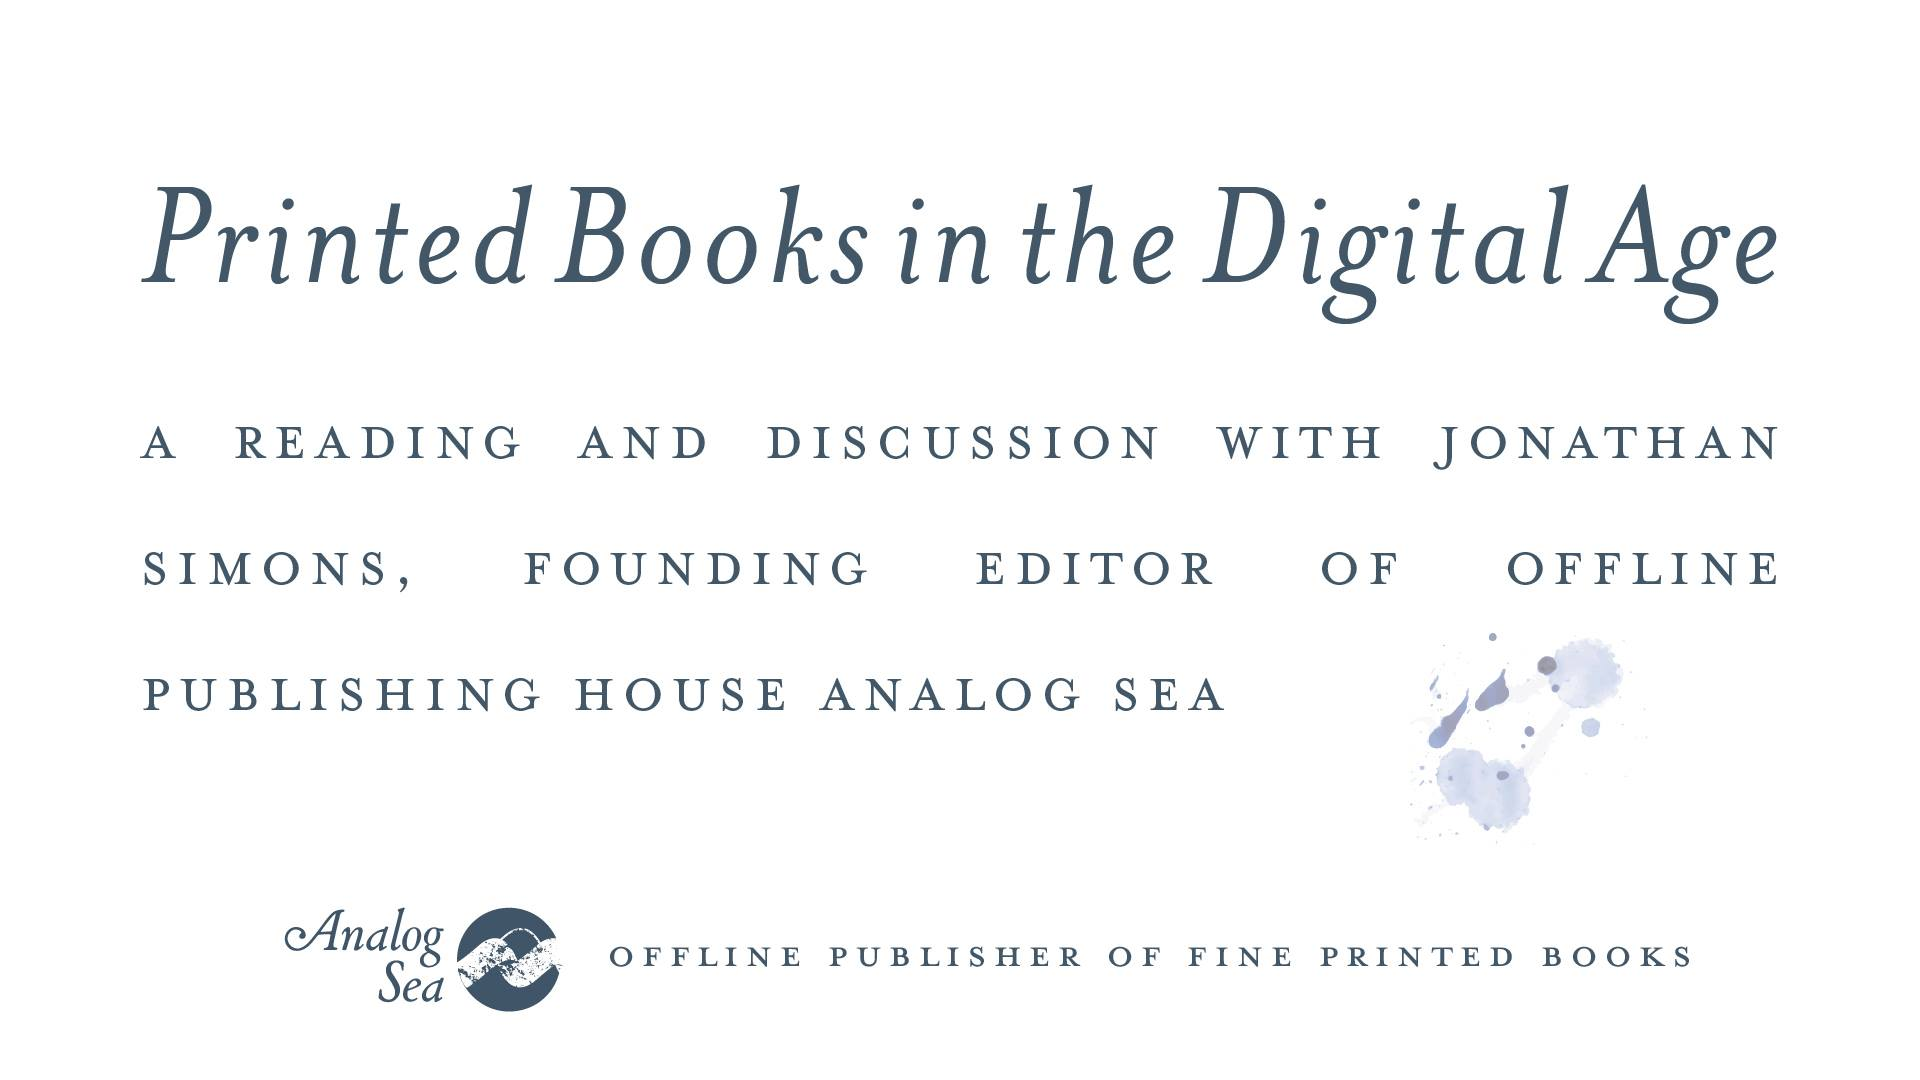 Printed Books in the Digital Age Overview